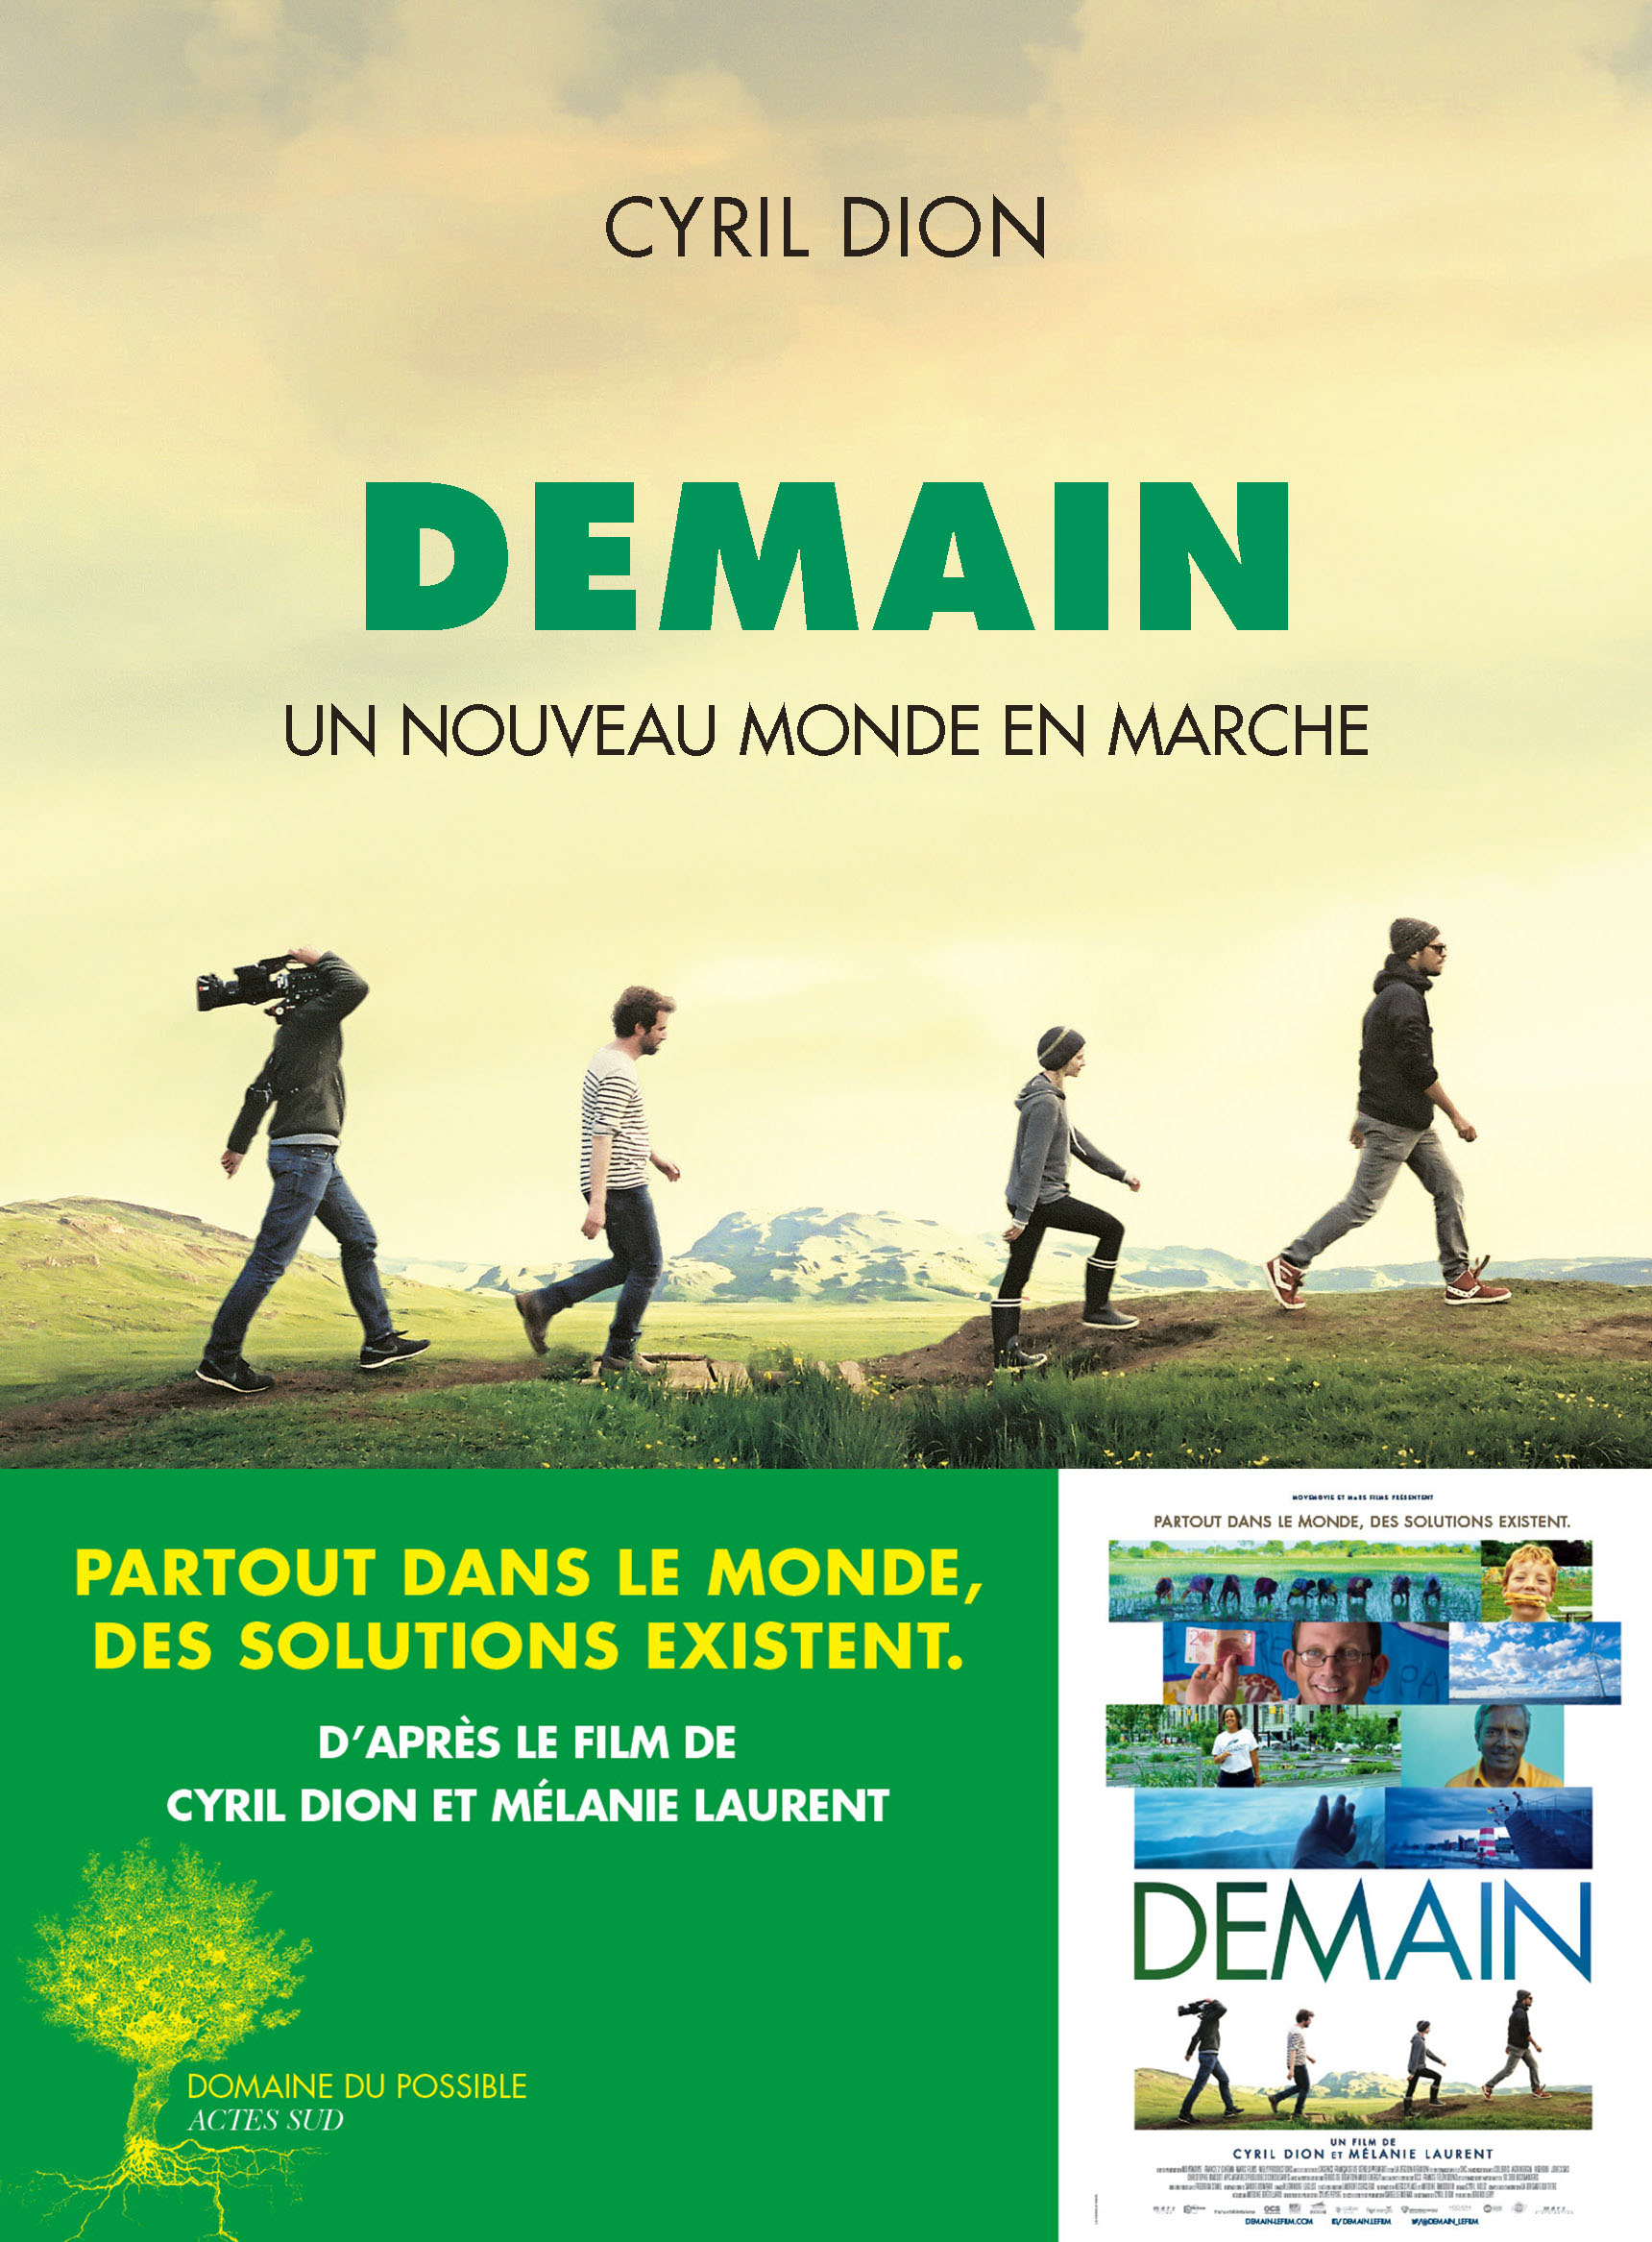 Demain | Dion, Cyril